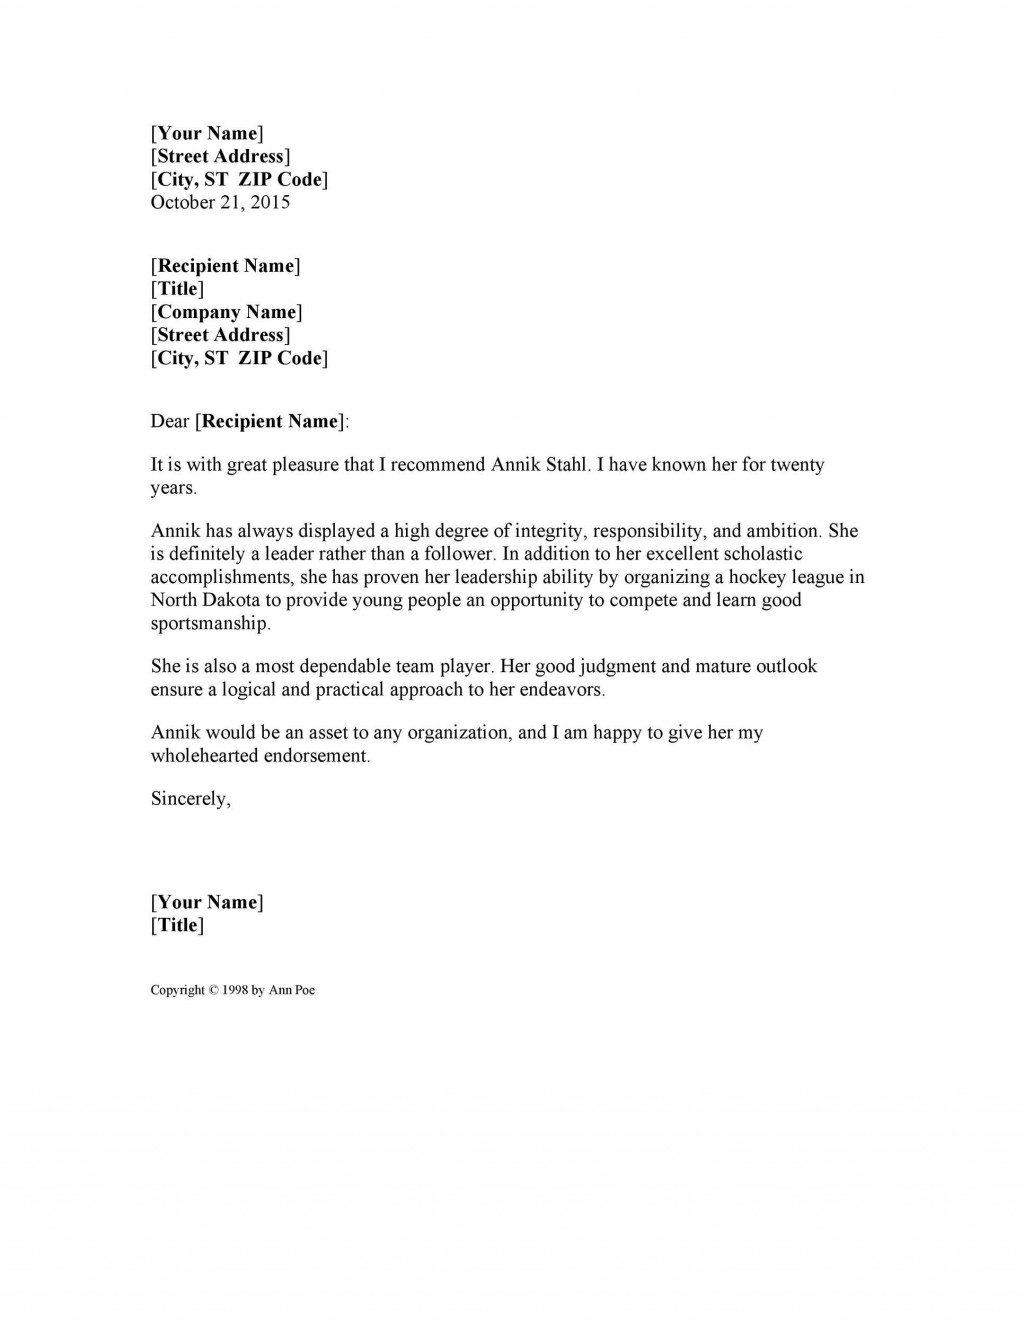 007 Wondrou Personal Letter Of Recommendation Template Image  Templates Character Reference WordLarge